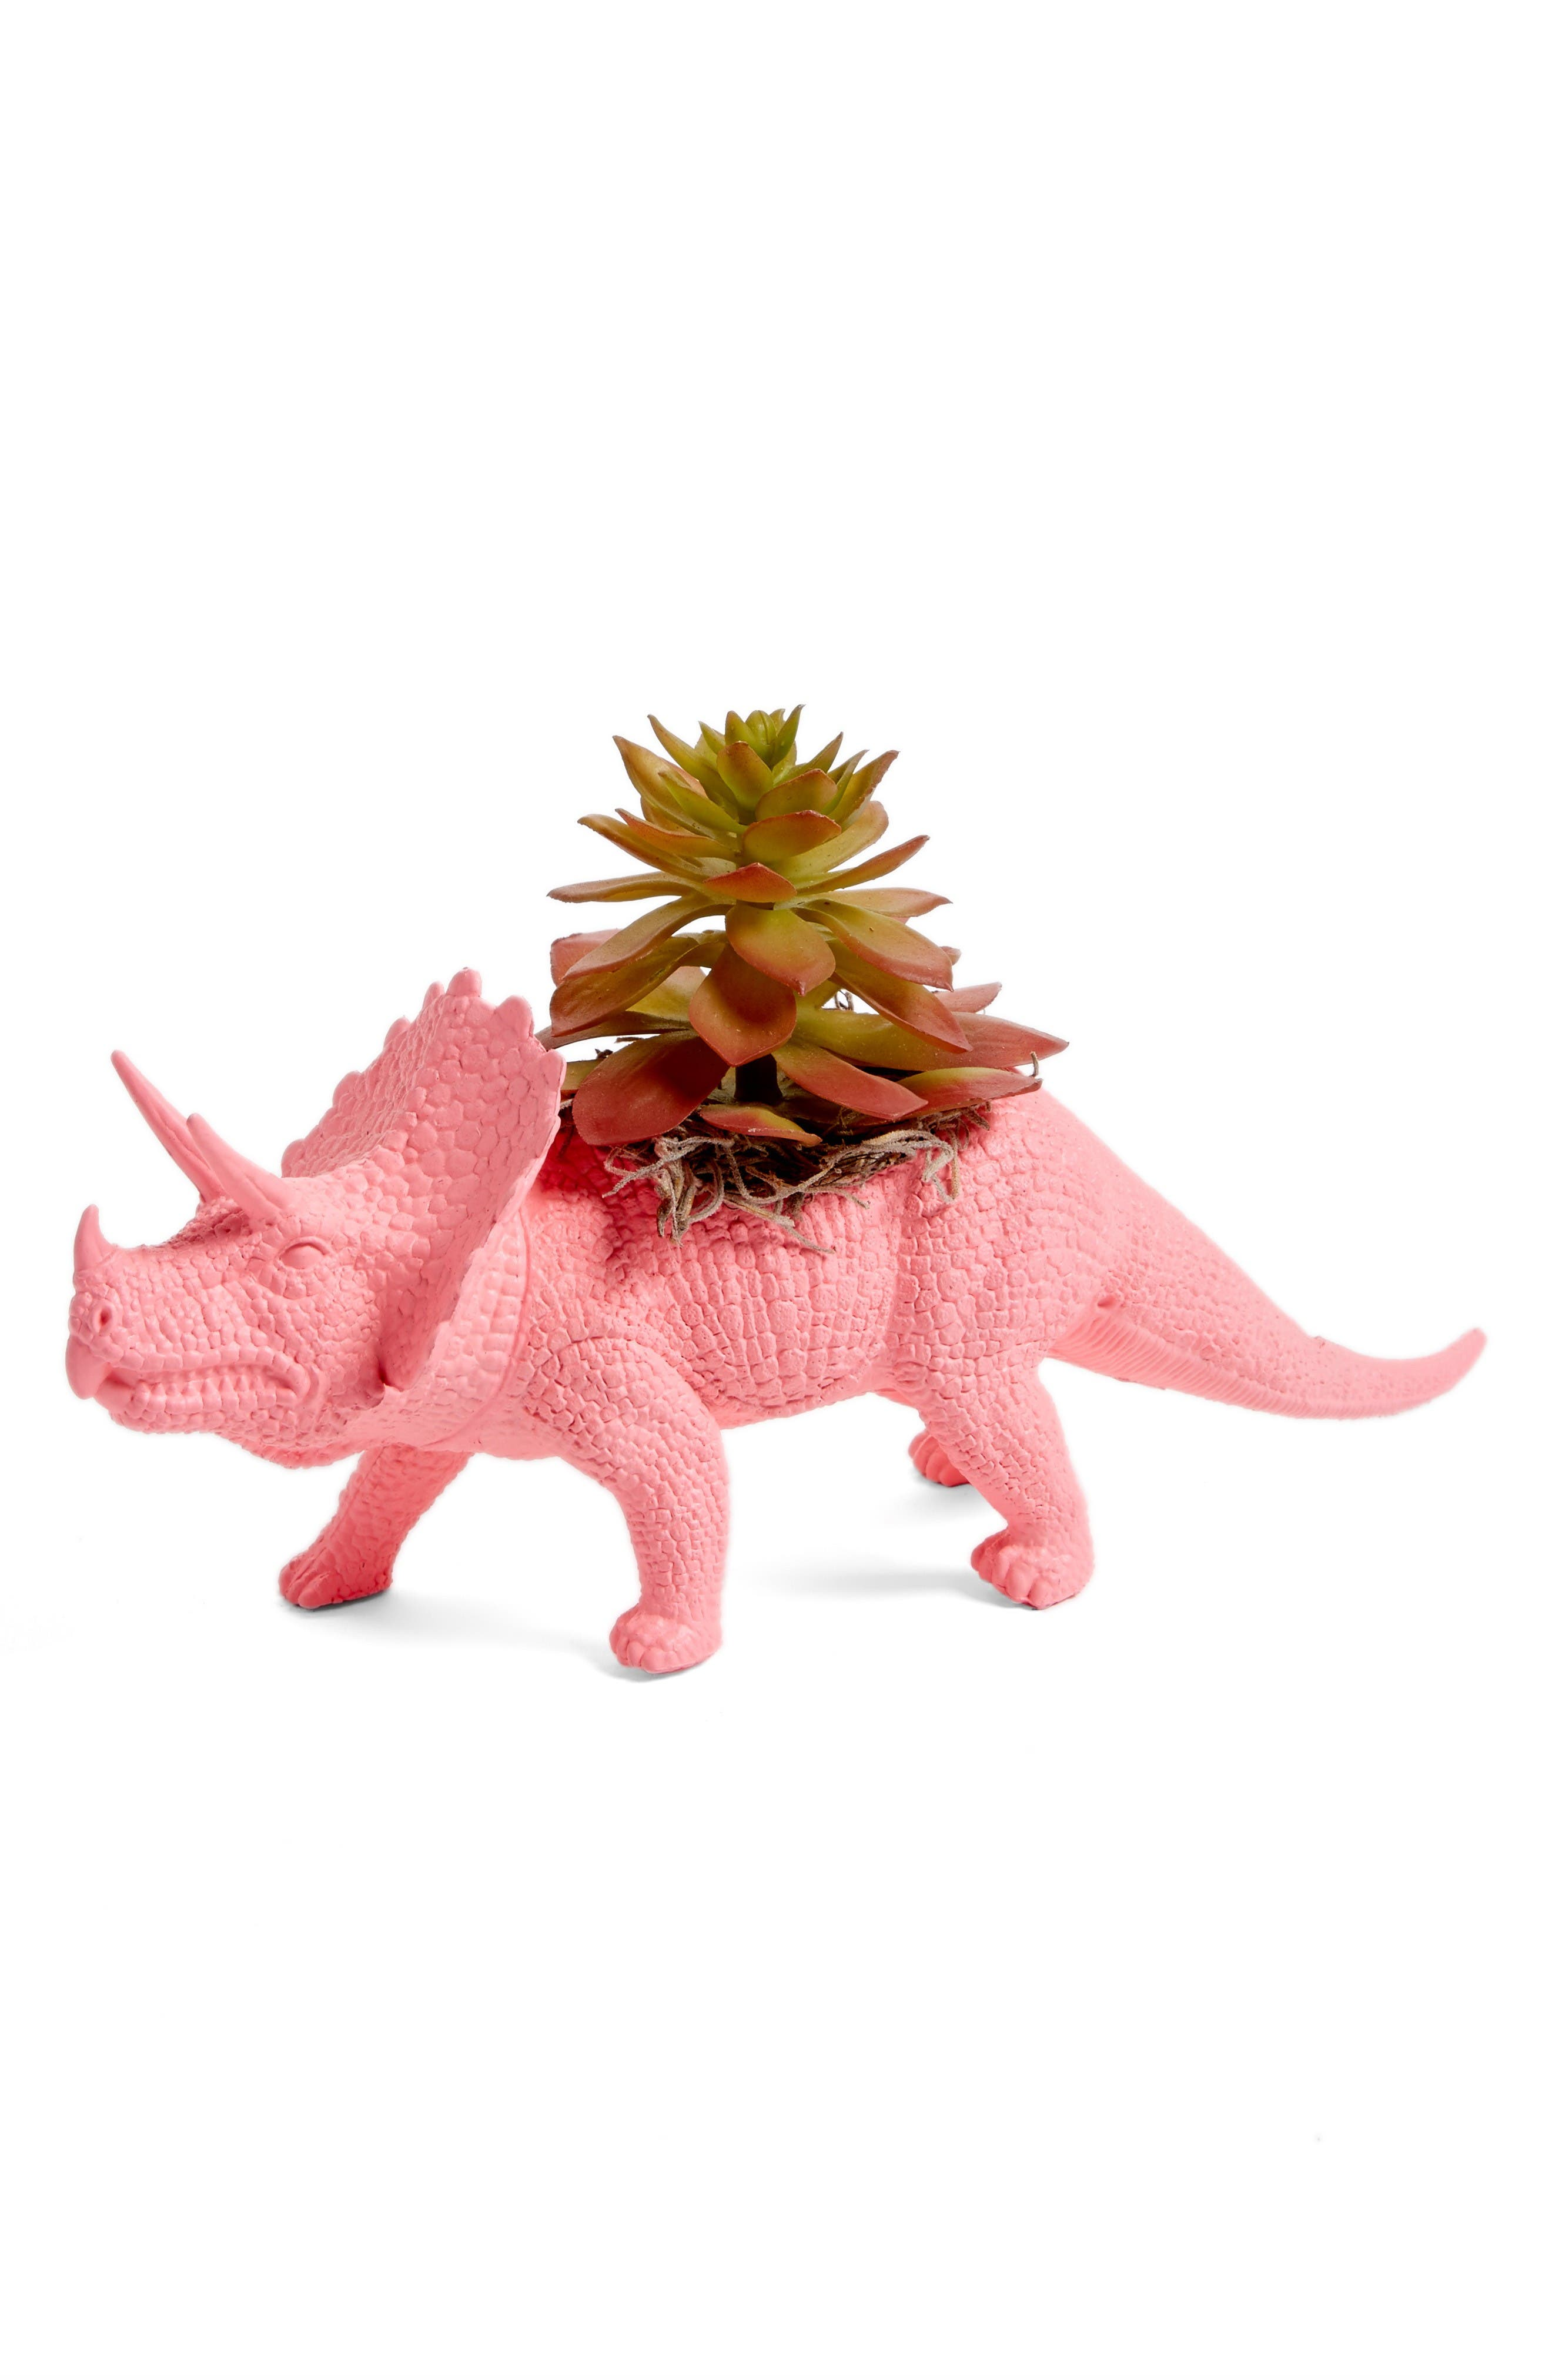 Plaid Pigeon Triceratops Faux Planter